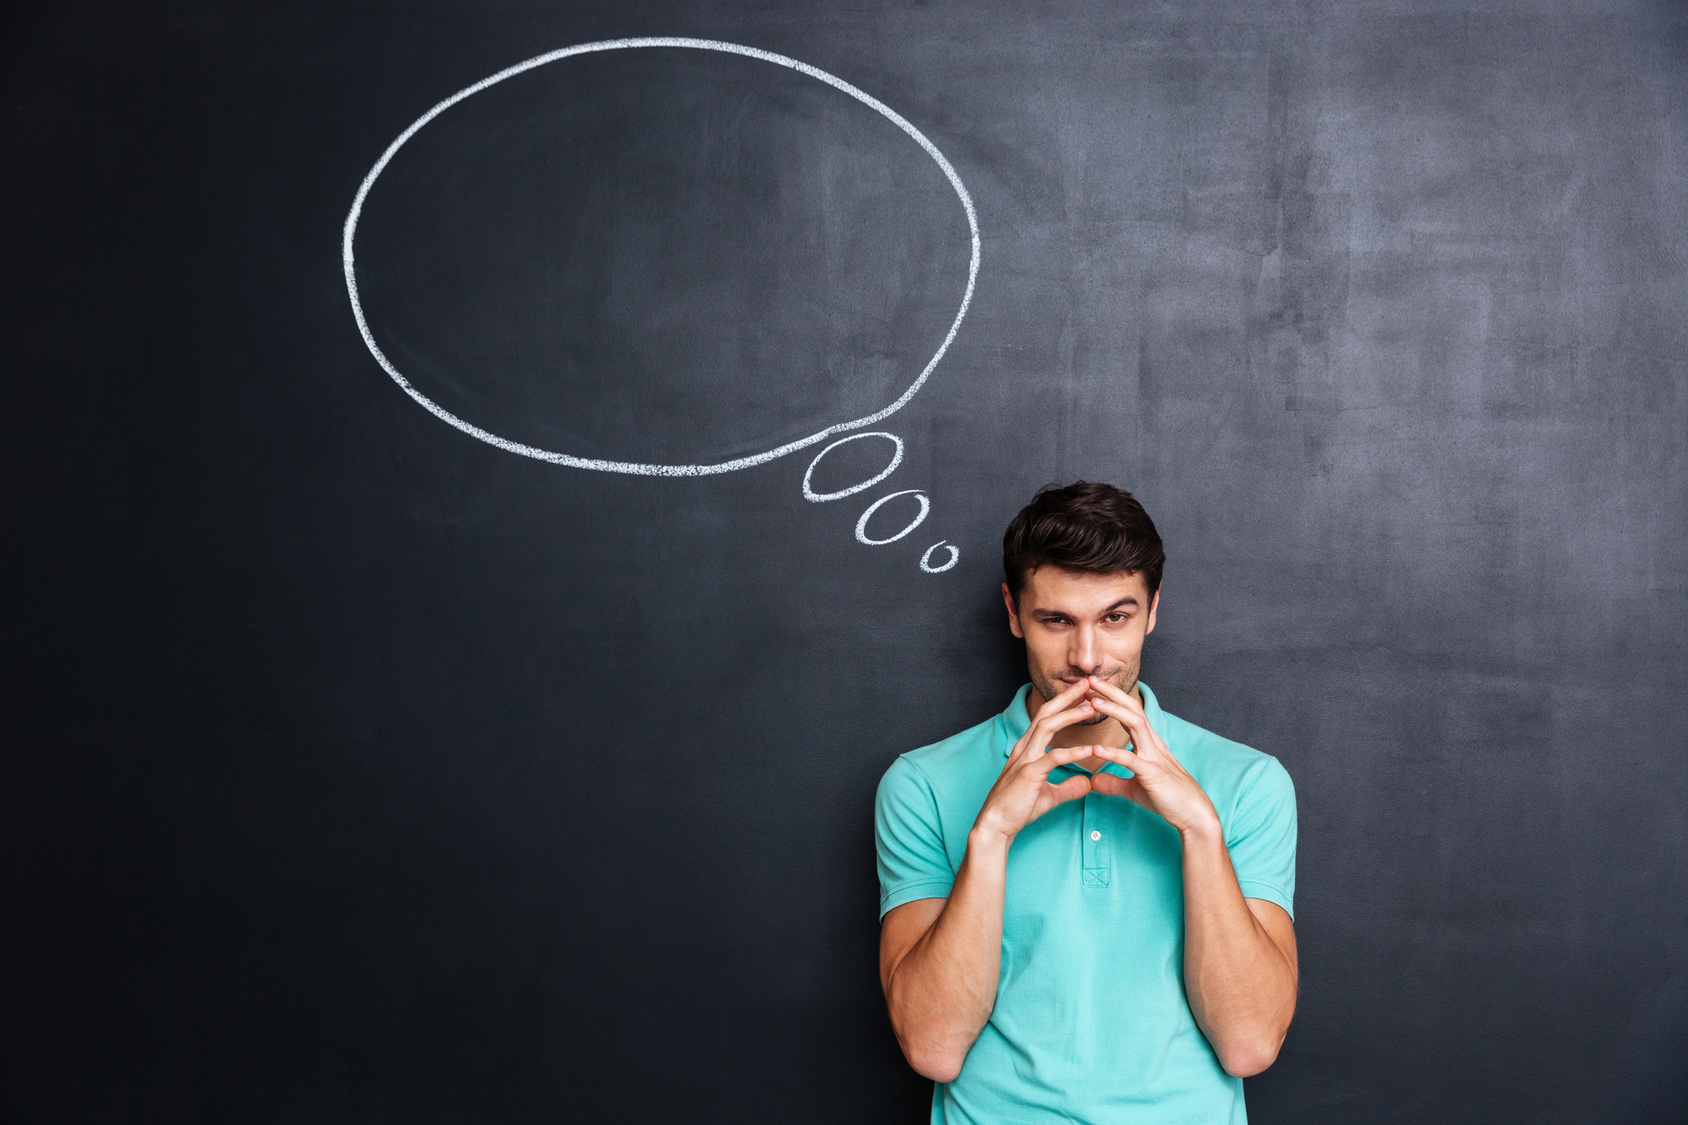 Smiling thoughtful young man over chalkboard background with blank speech bubble